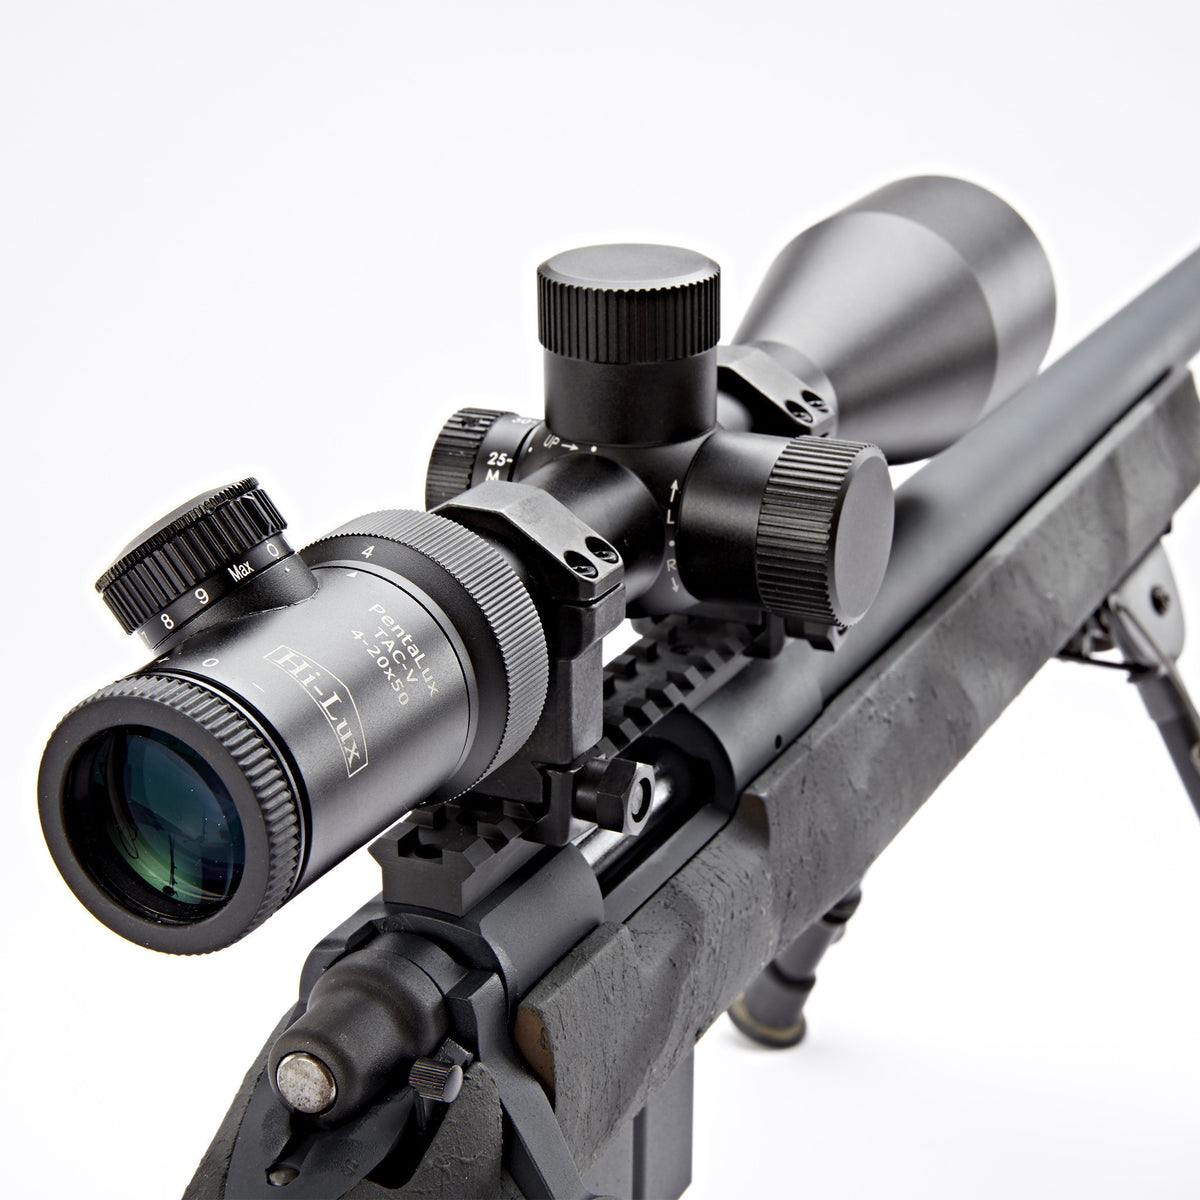 TAC-V420 eyepiece view mounted on TYR Bolt rifle